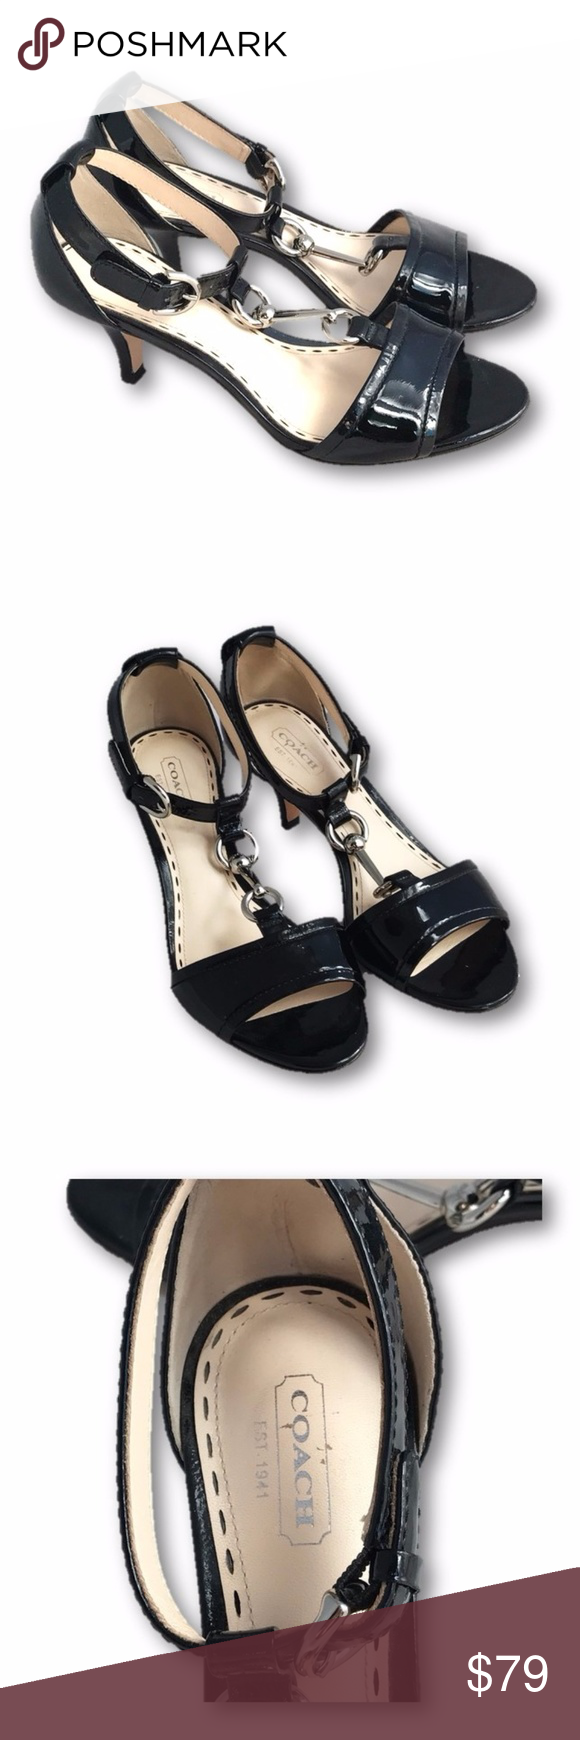 0fc202c1828 COACH Black Patent Leather Peep toe Kitten Heel Coach Black Patent Leather  Inez Kitten Heel with Open Toe. Silver Hardware Accent. 2.5